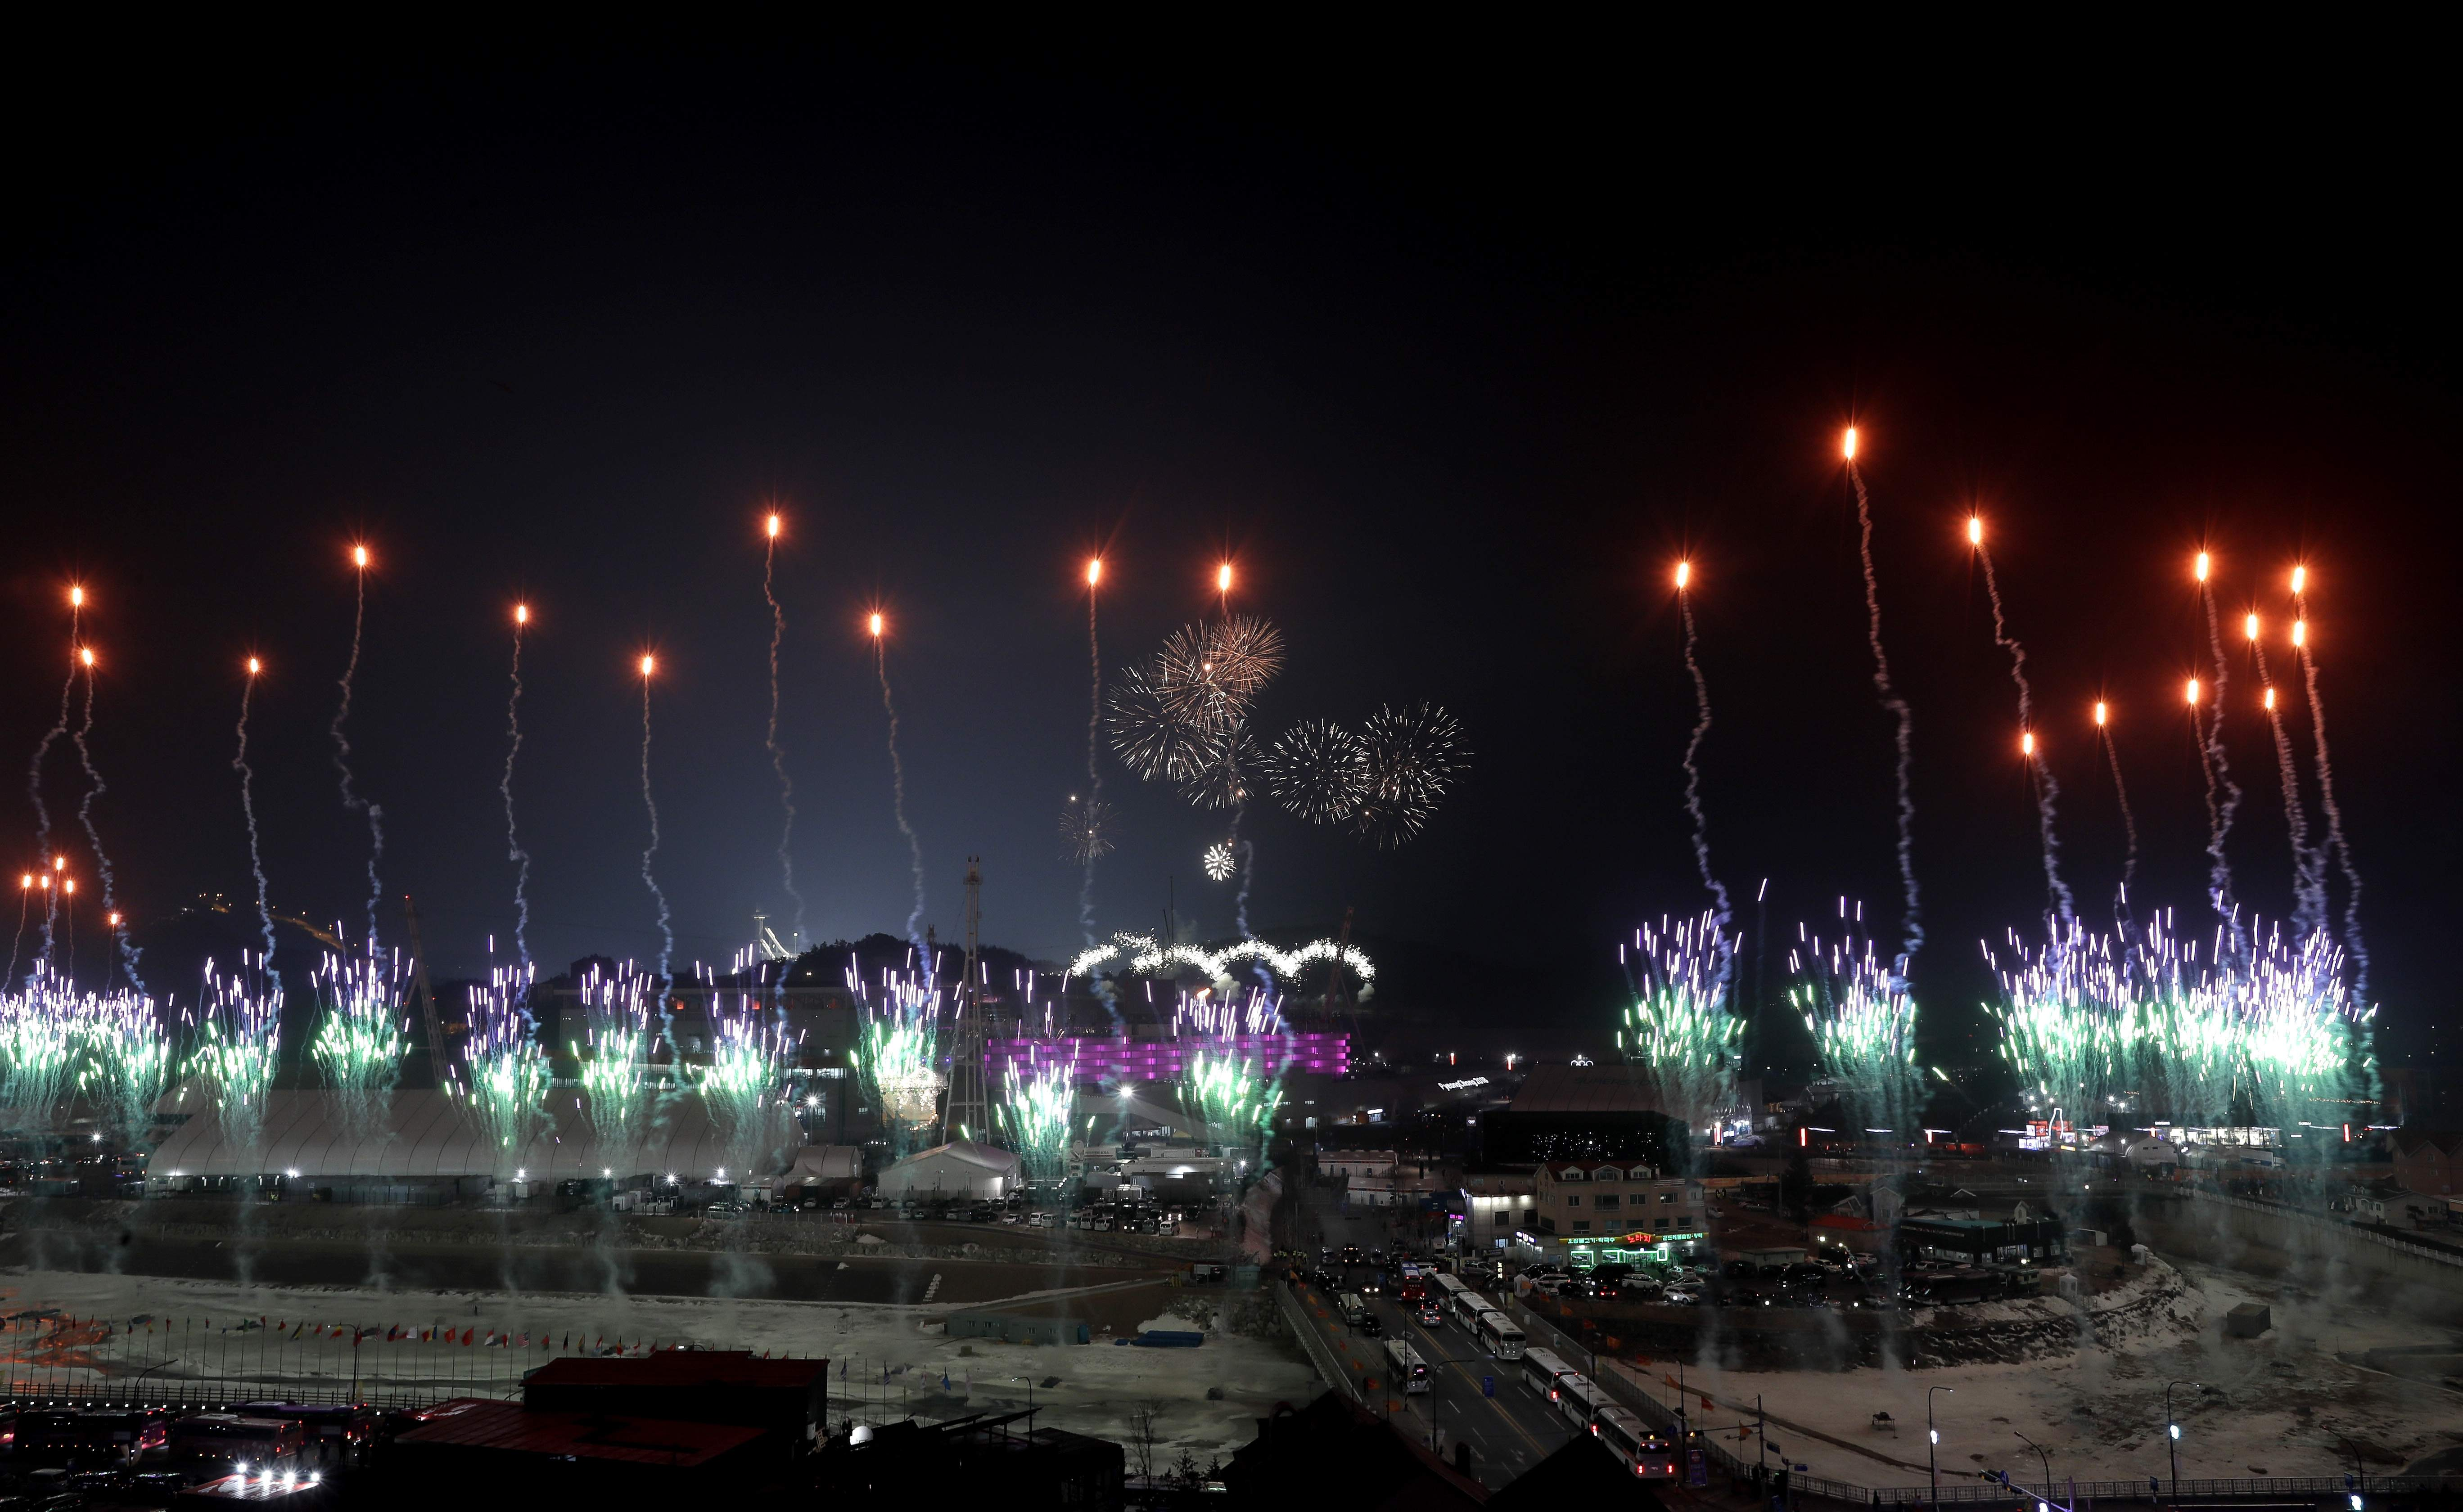 Fireworks explode around the Olympic Stadium during the opening ceremony at the 2018 Winter Olympics in Pyeongchang, South Korea, Friday, Feb. 9, 2018. (AP Photo/Kirsty Wigglesworth)